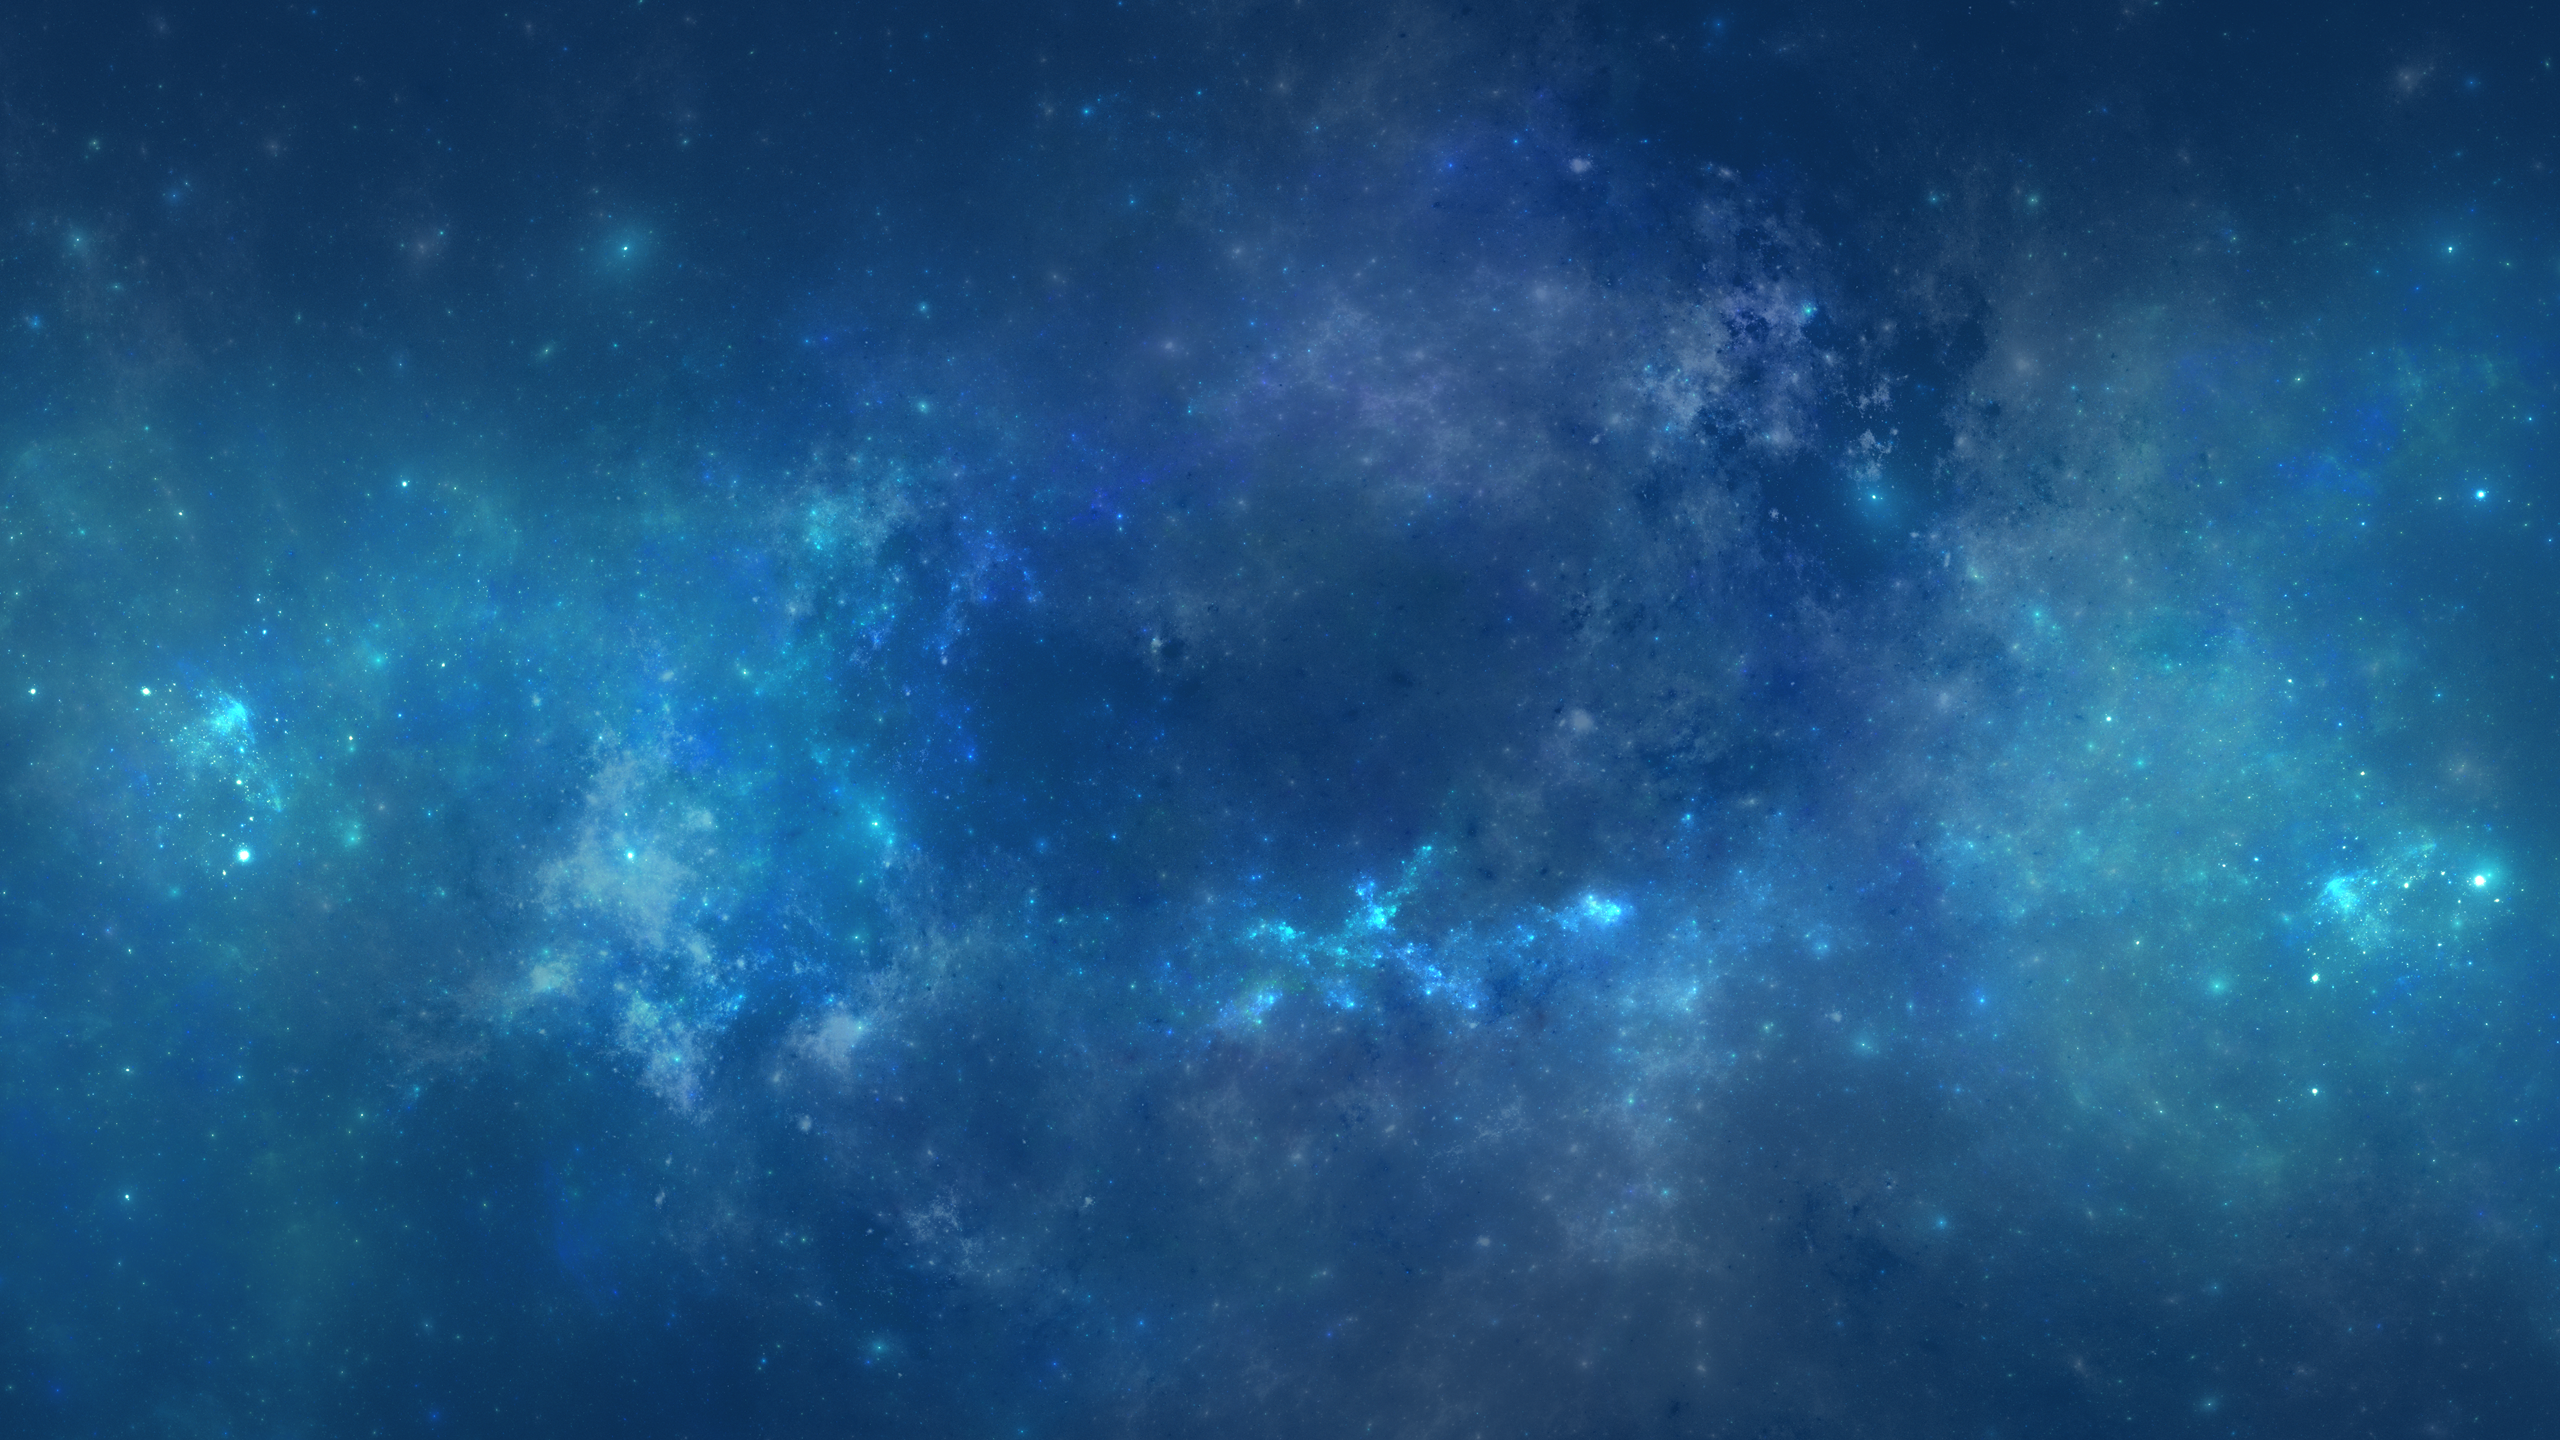 full screen hd wallpapers space - photo #42